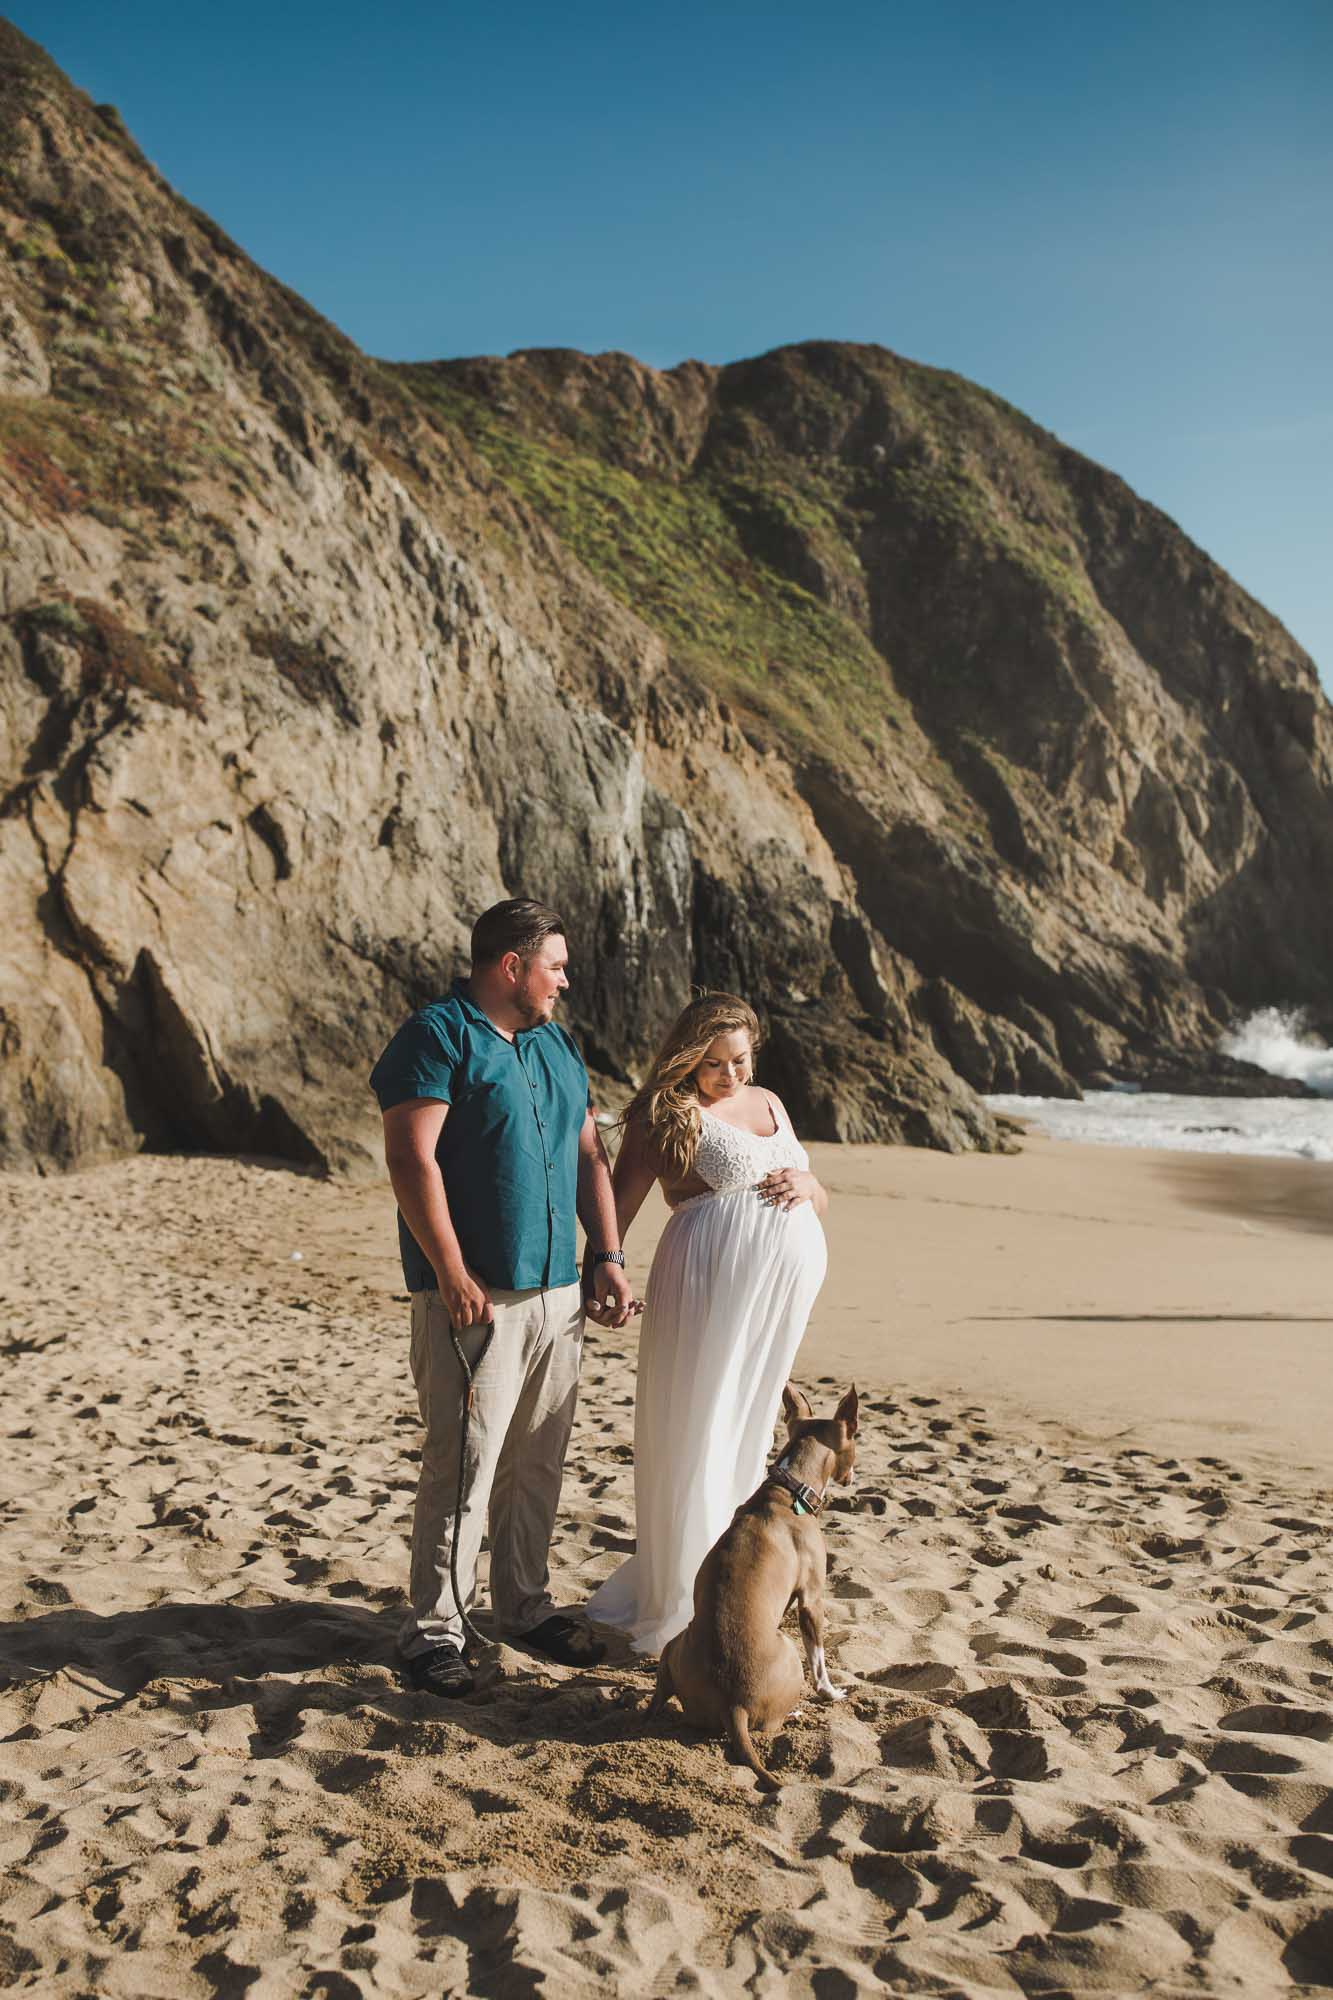 pacifica_maternity_session_california_family_photographer_00002.jpg